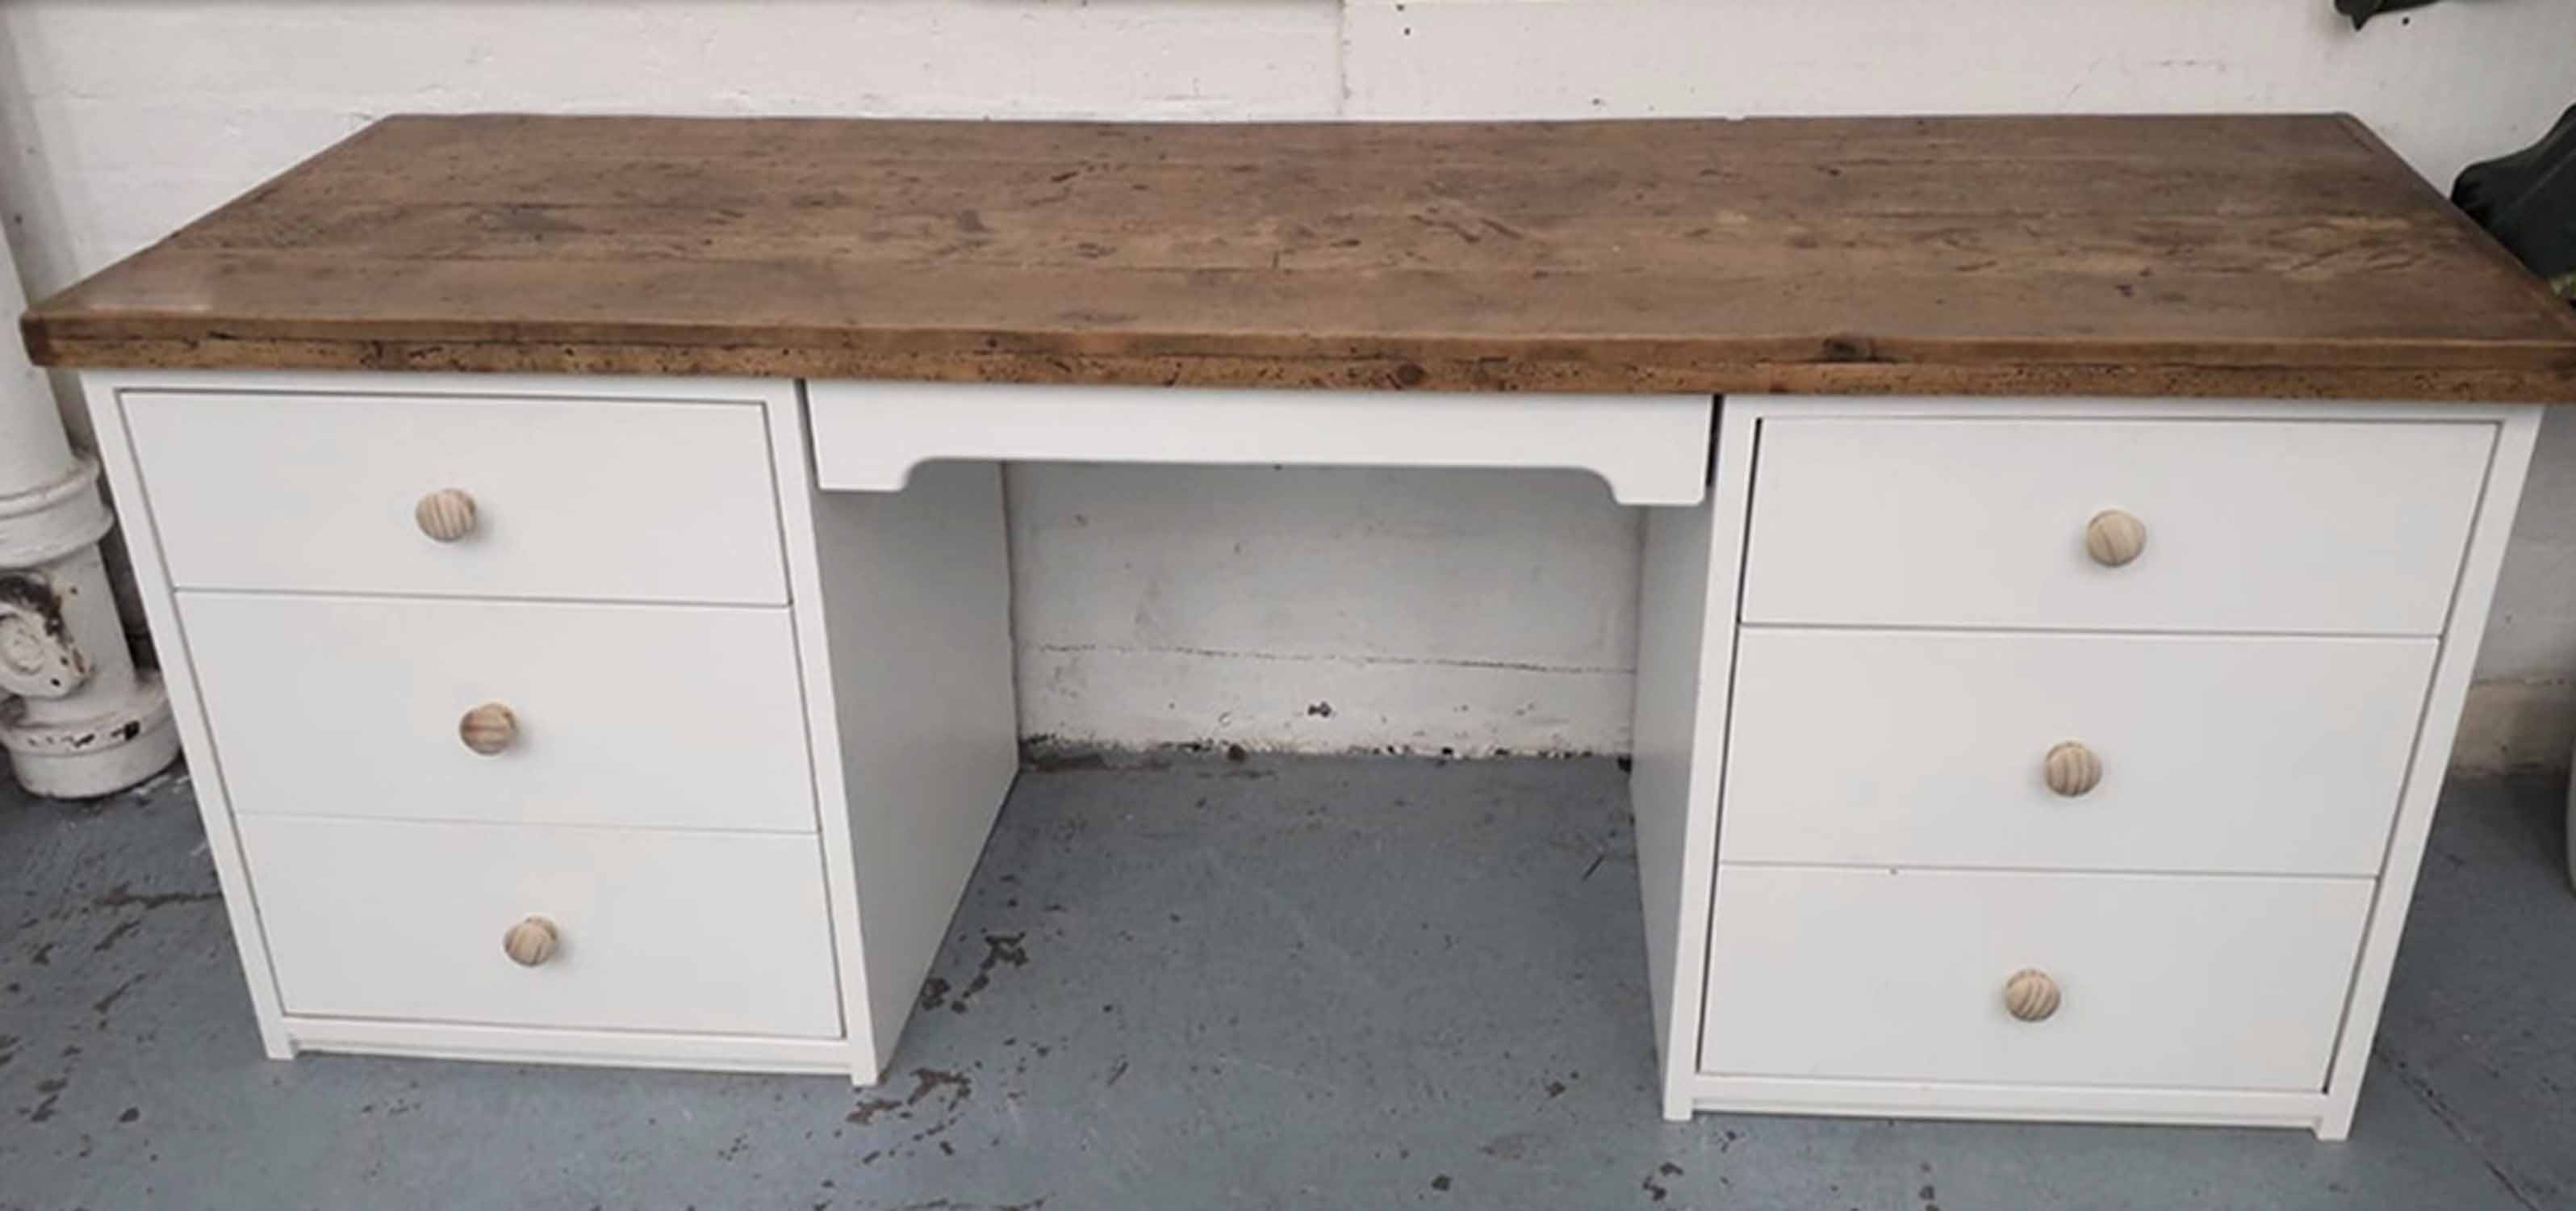 Lot 12 - DESK, with plank rustic top on a white melamine base with seven drawers, 198cm x 60cm x 76cm H.